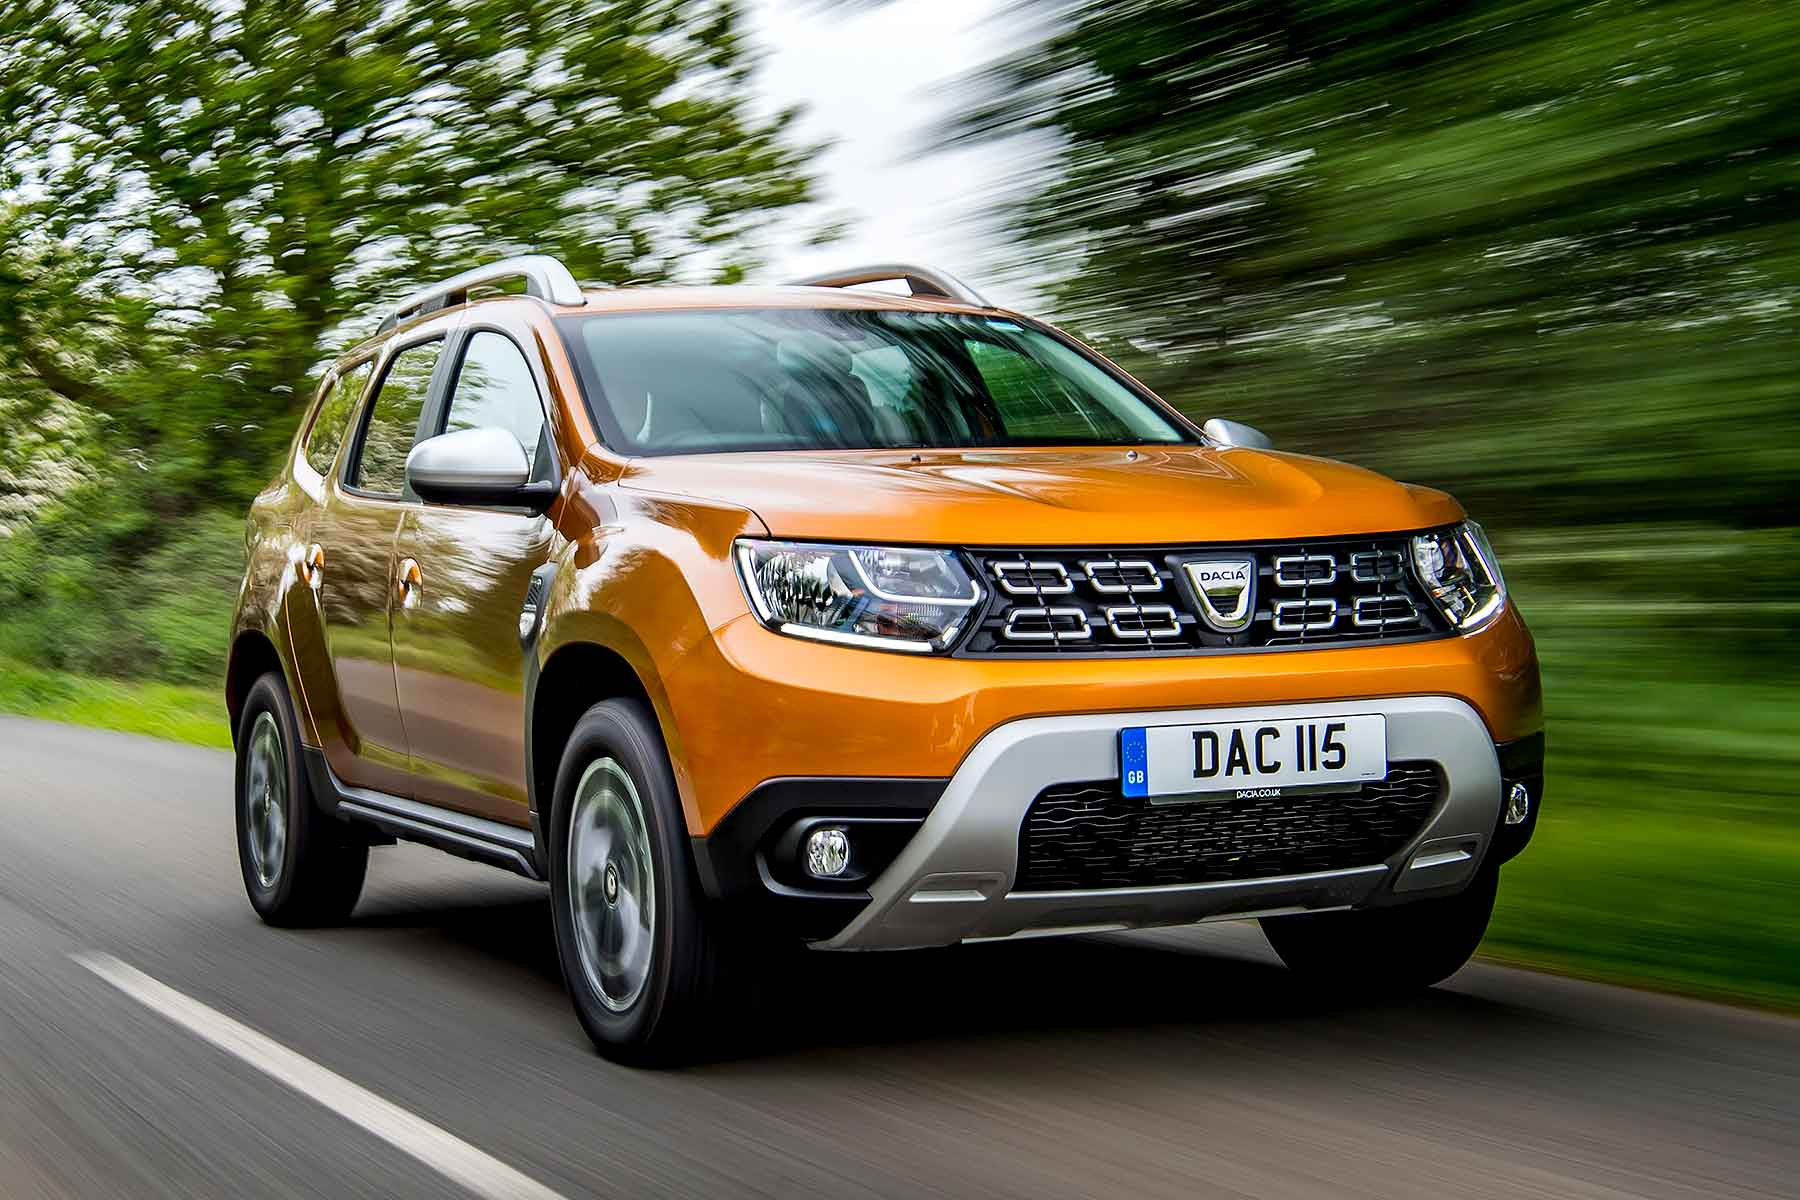 new 2018 dacia duster prices confirmed from 9 995 motoring research. Black Bedroom Furniture Sets. Home Design Ideas